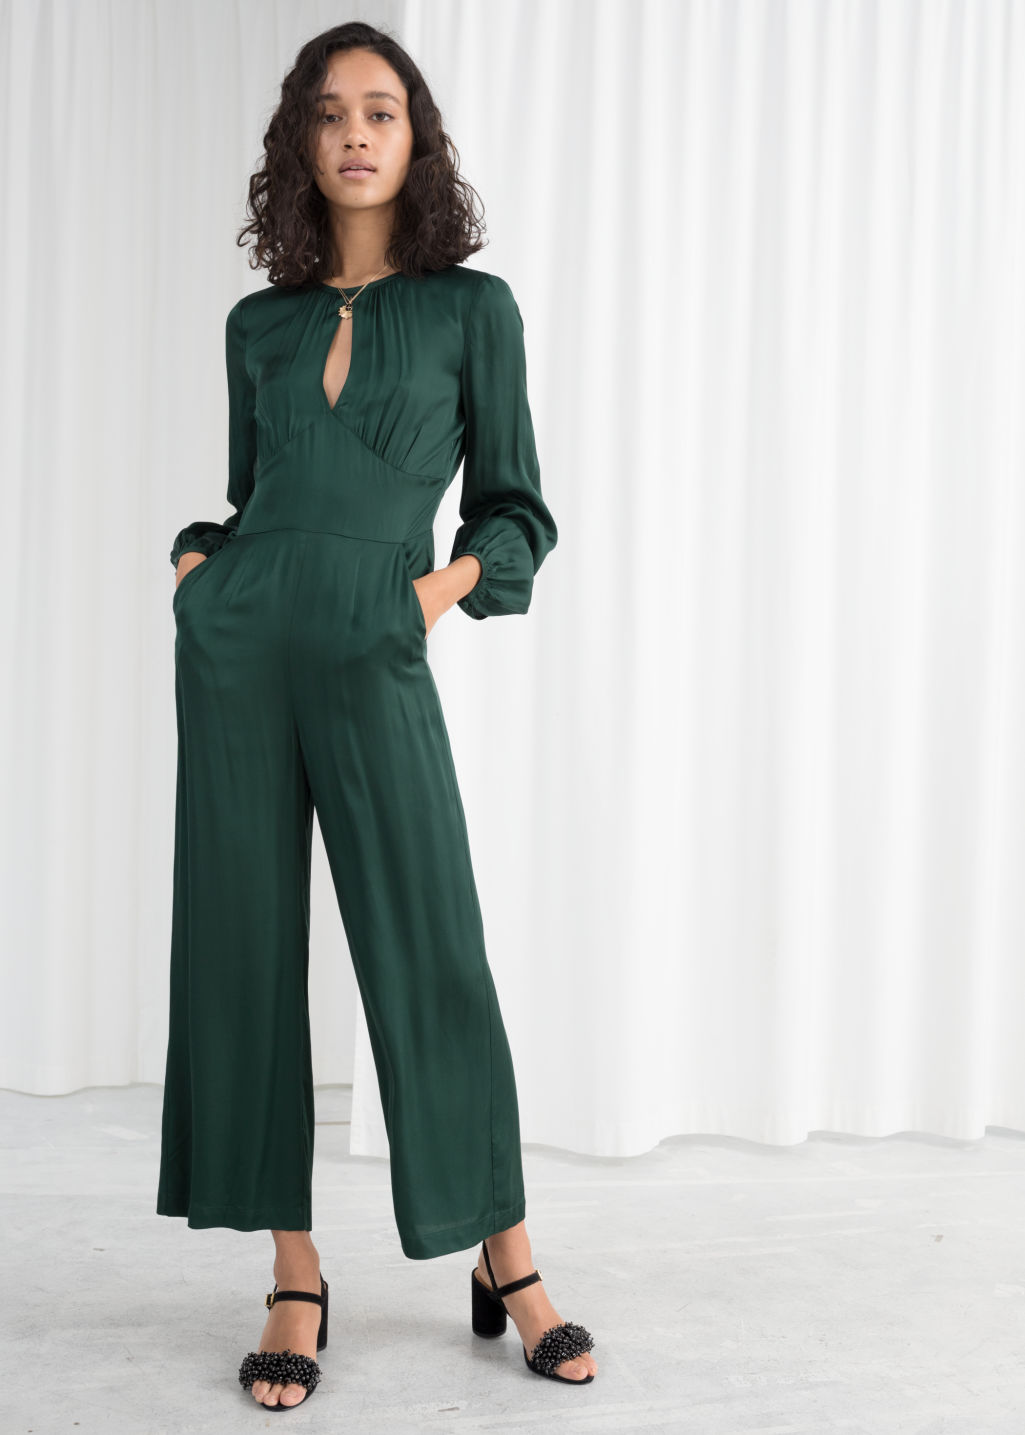 384b2579f185 Long Sleeve Satin Jumpsuit - Green - Jumpsuits   Playsuits -   Other ...